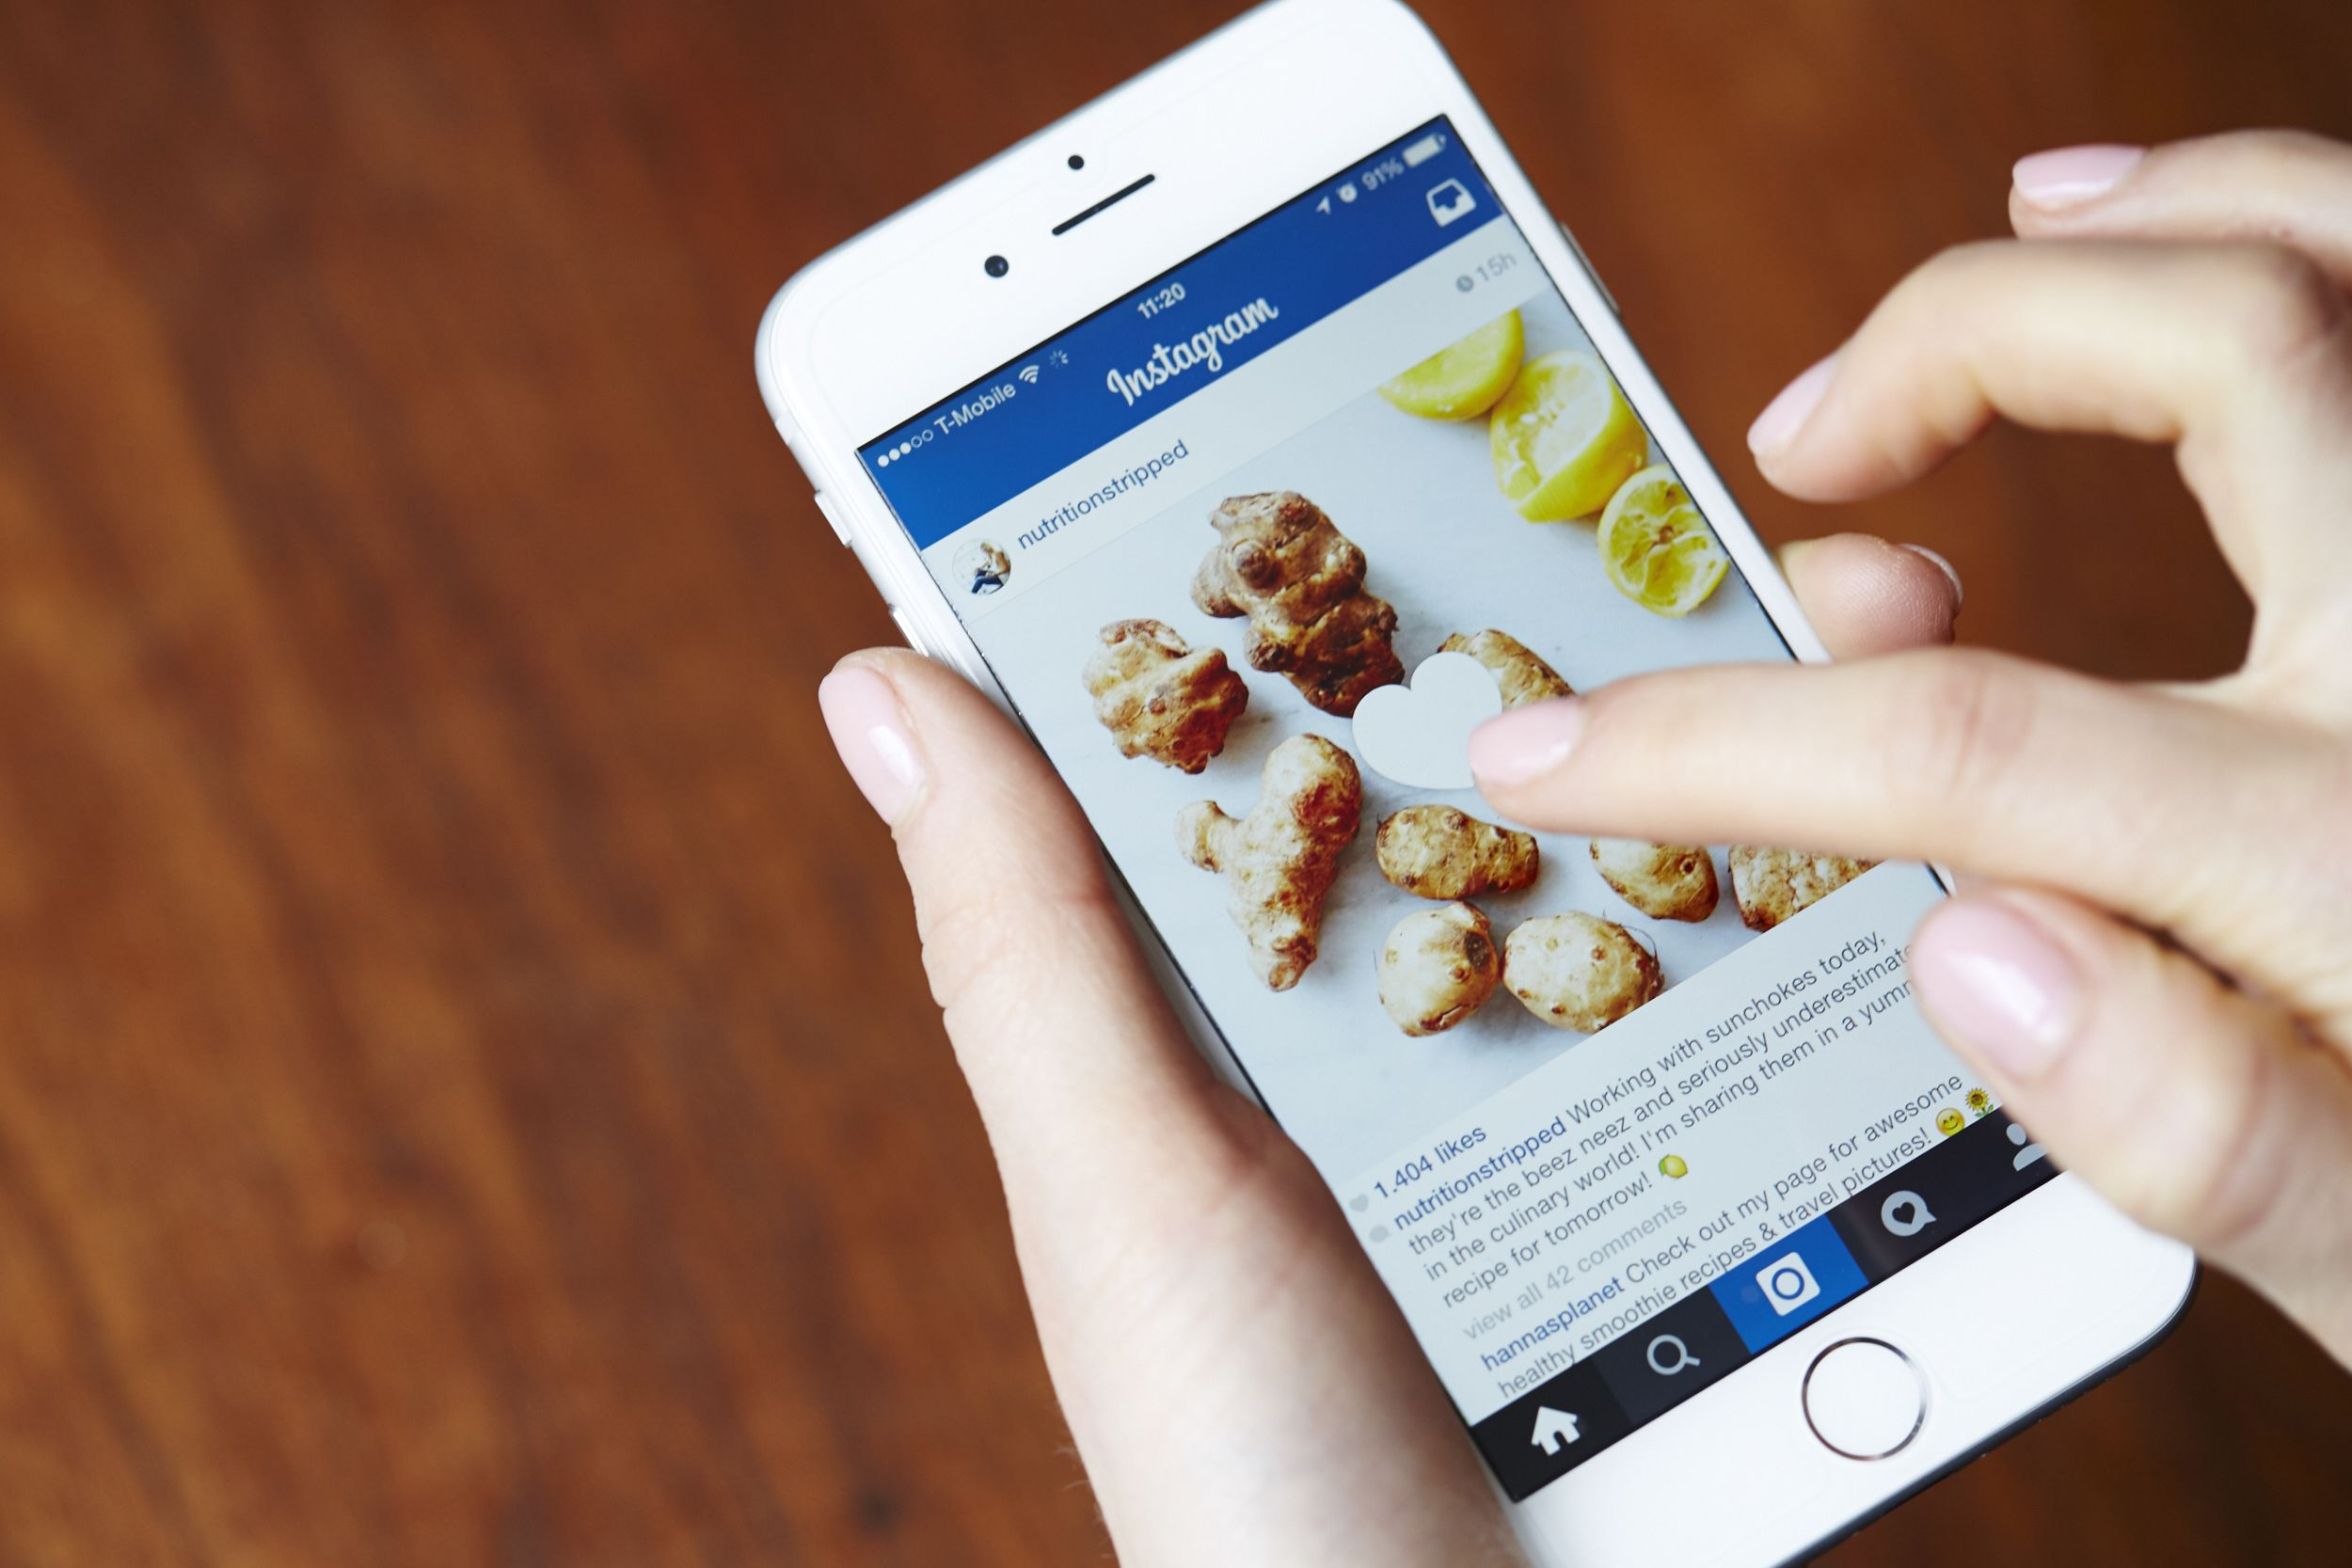 How to See Previously Liked Posts on Instagram